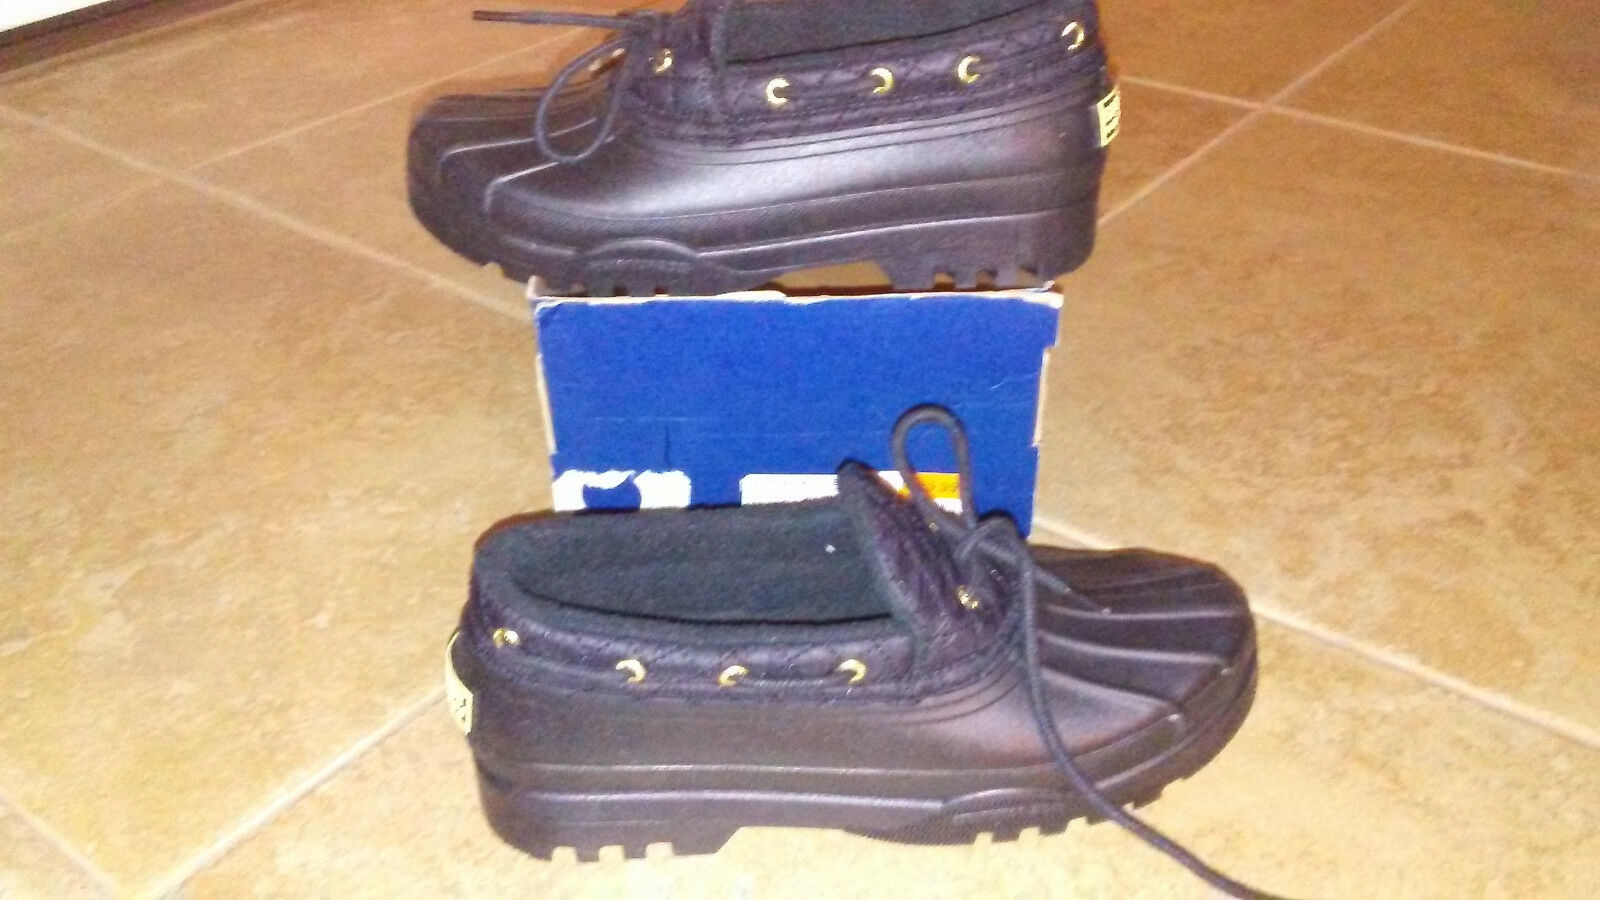 NEW  Womens Sperry Duckling Black Rain Shoes, size 9  waterproof rubber